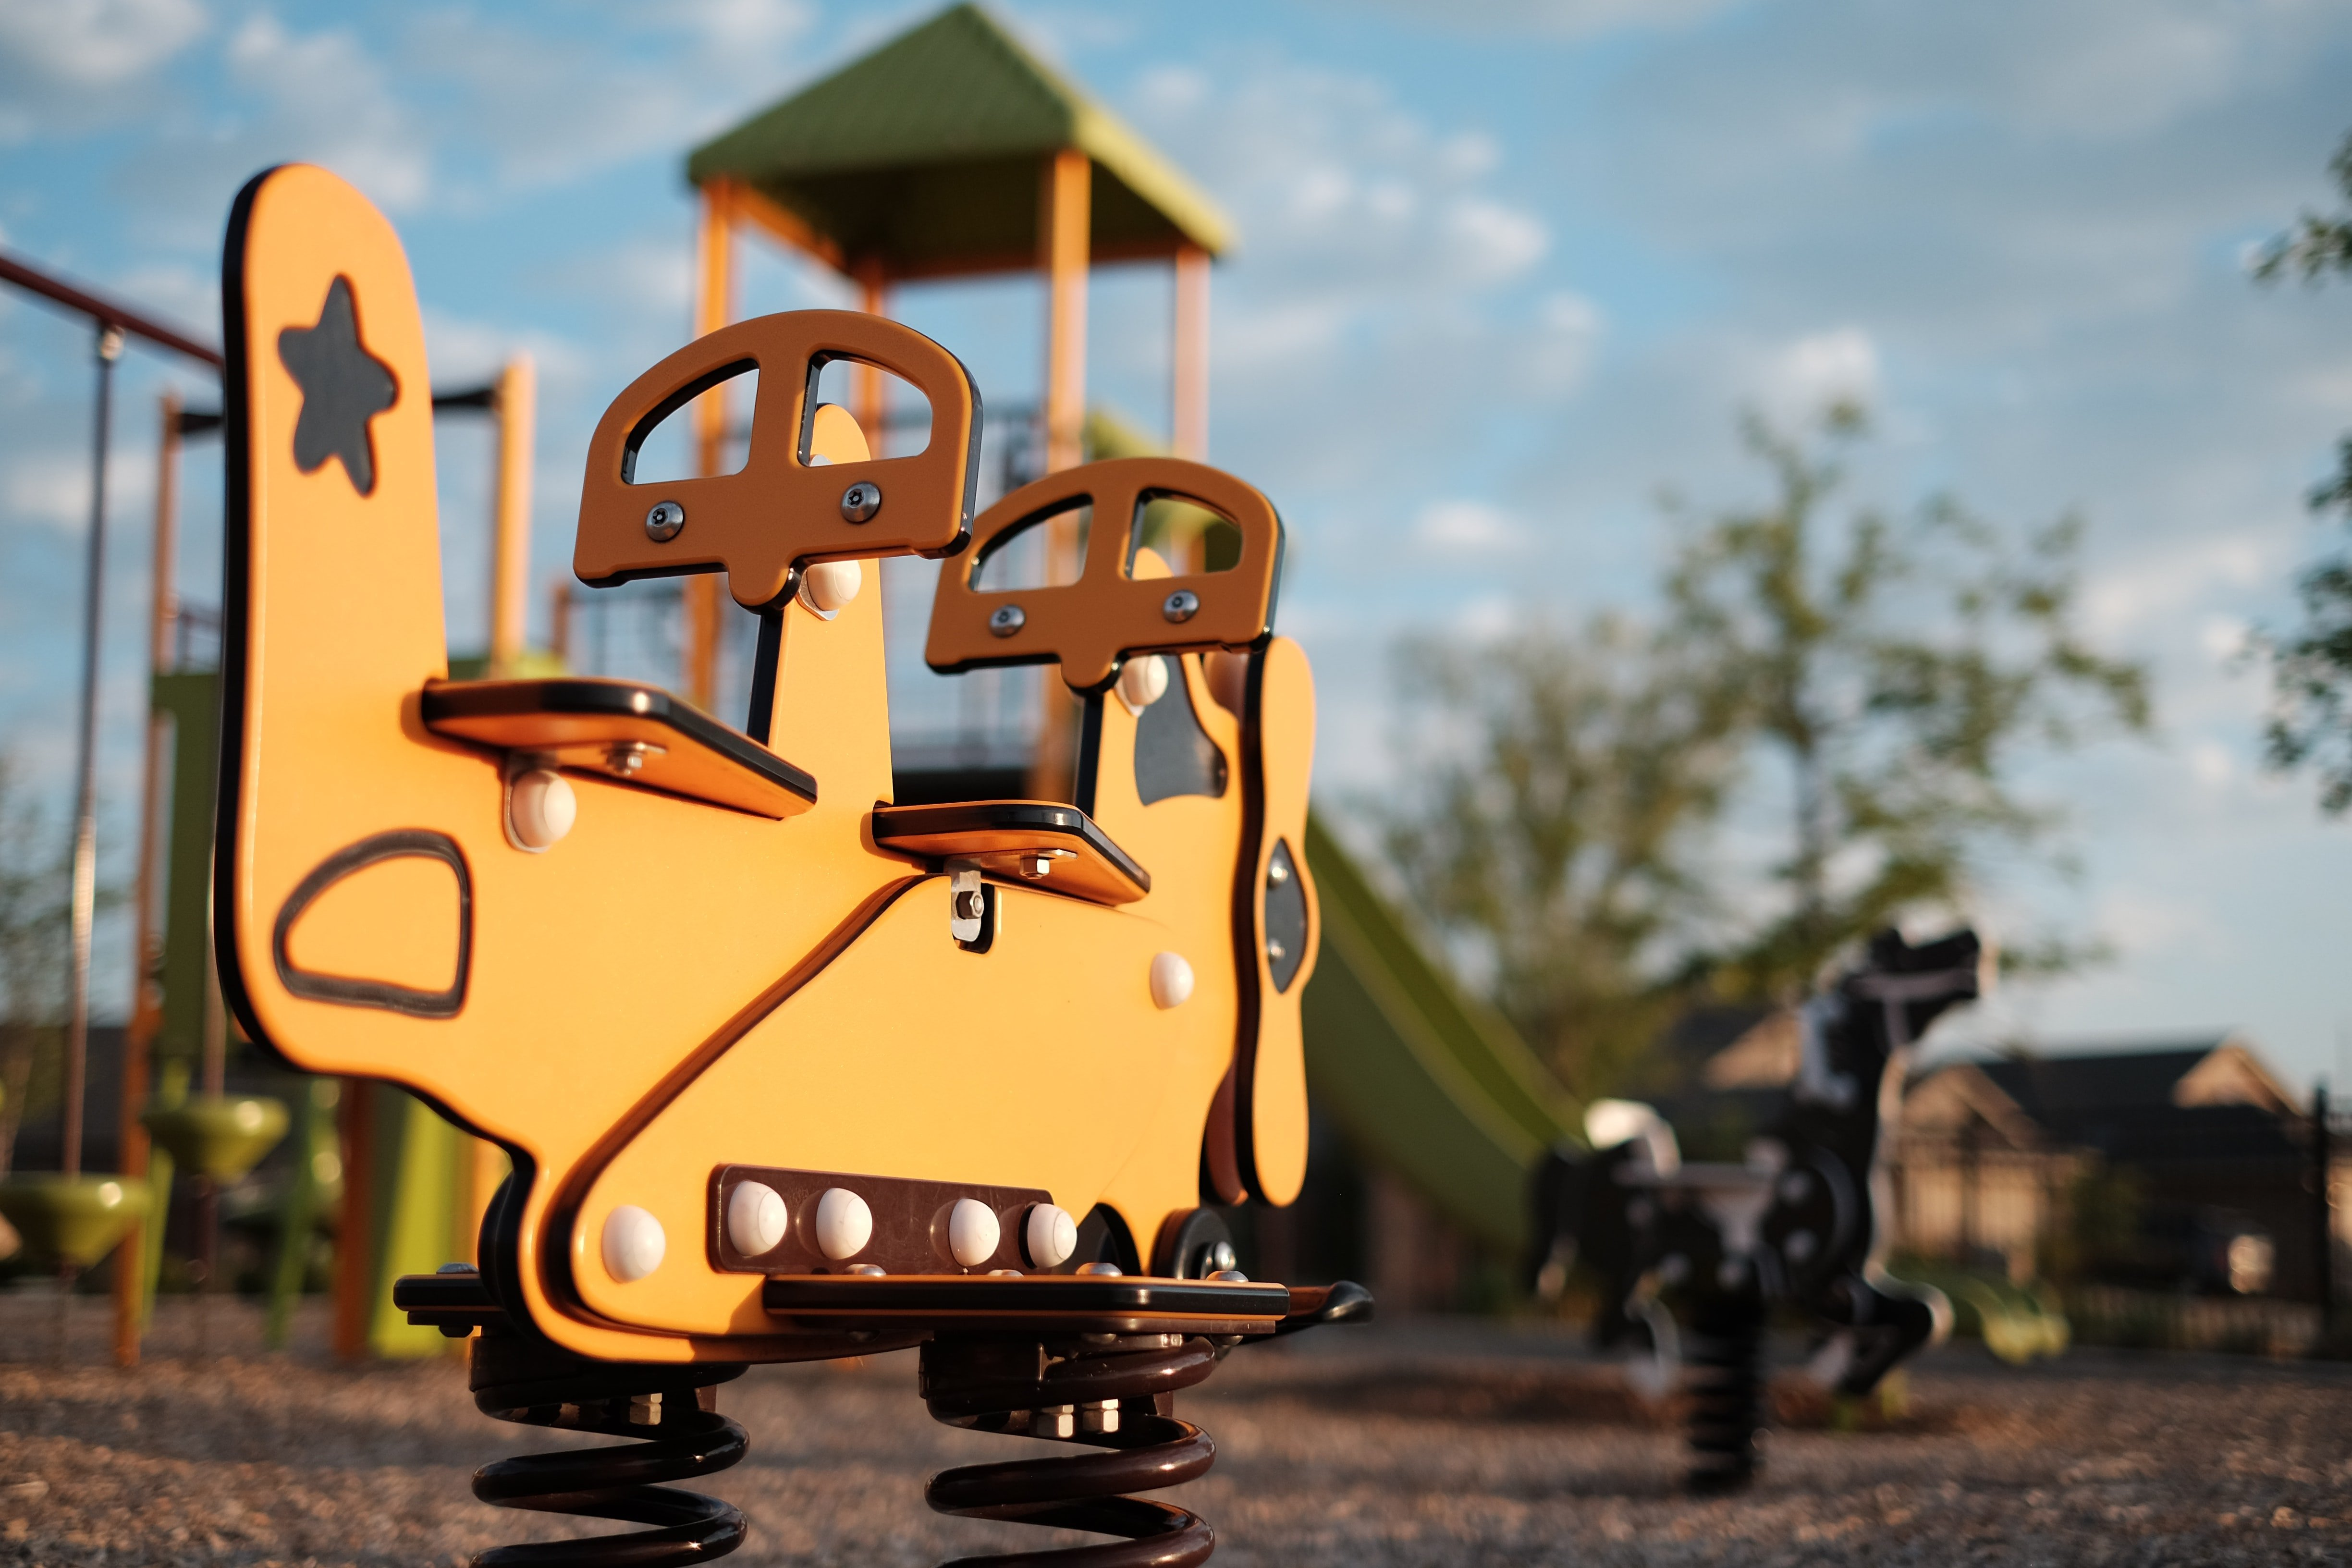 Churchich Recreation Age Inclusive Play Image of Playground